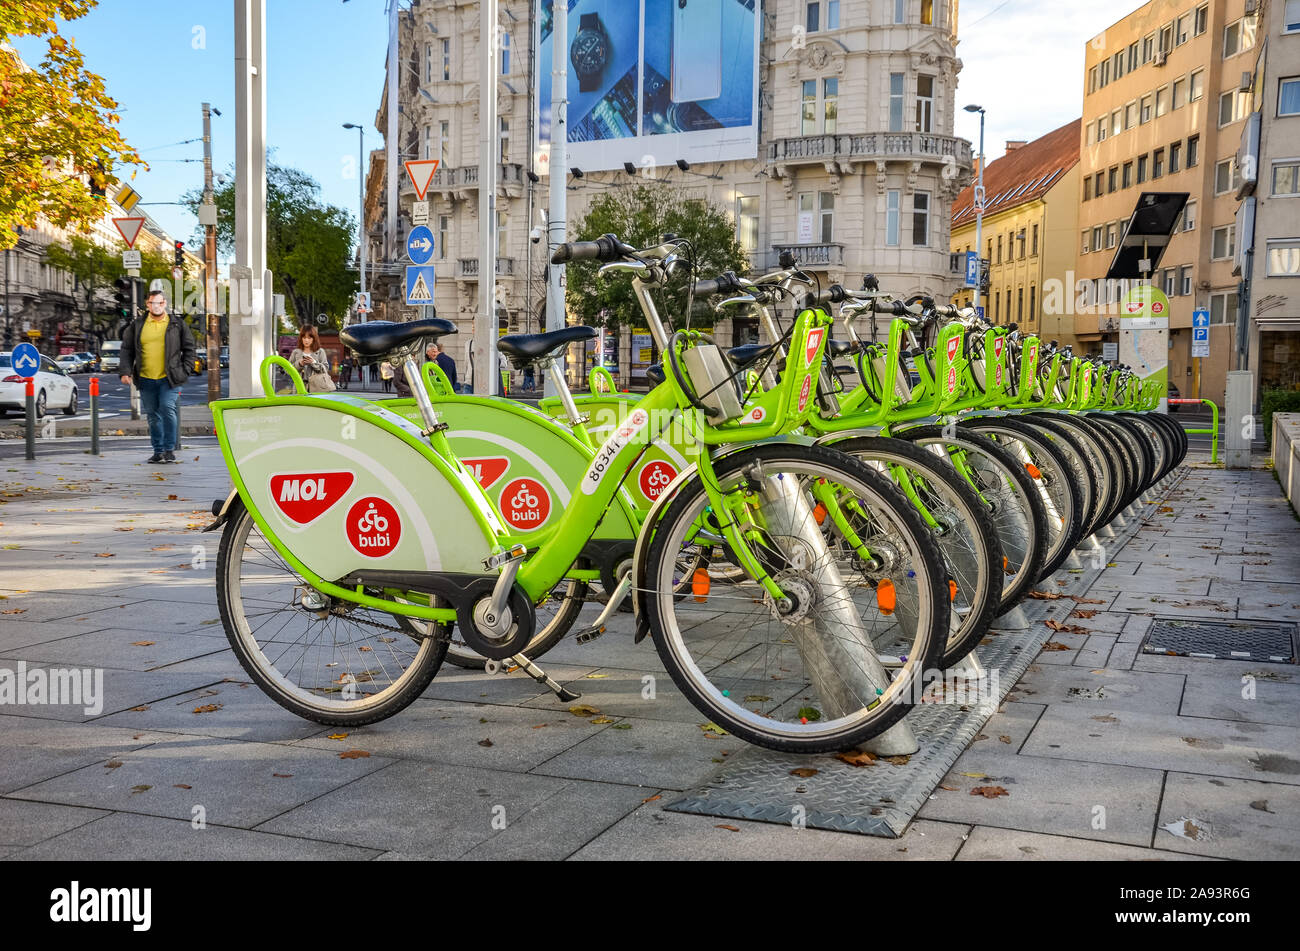 Budapest, Hungary - Nov 6, 2019: Public green bikes for rental in the center of the Hungarian capital. Bike sharing. Eco-friendly means of transport. Ecological measure in the cities. Bicycles. Stock Photo